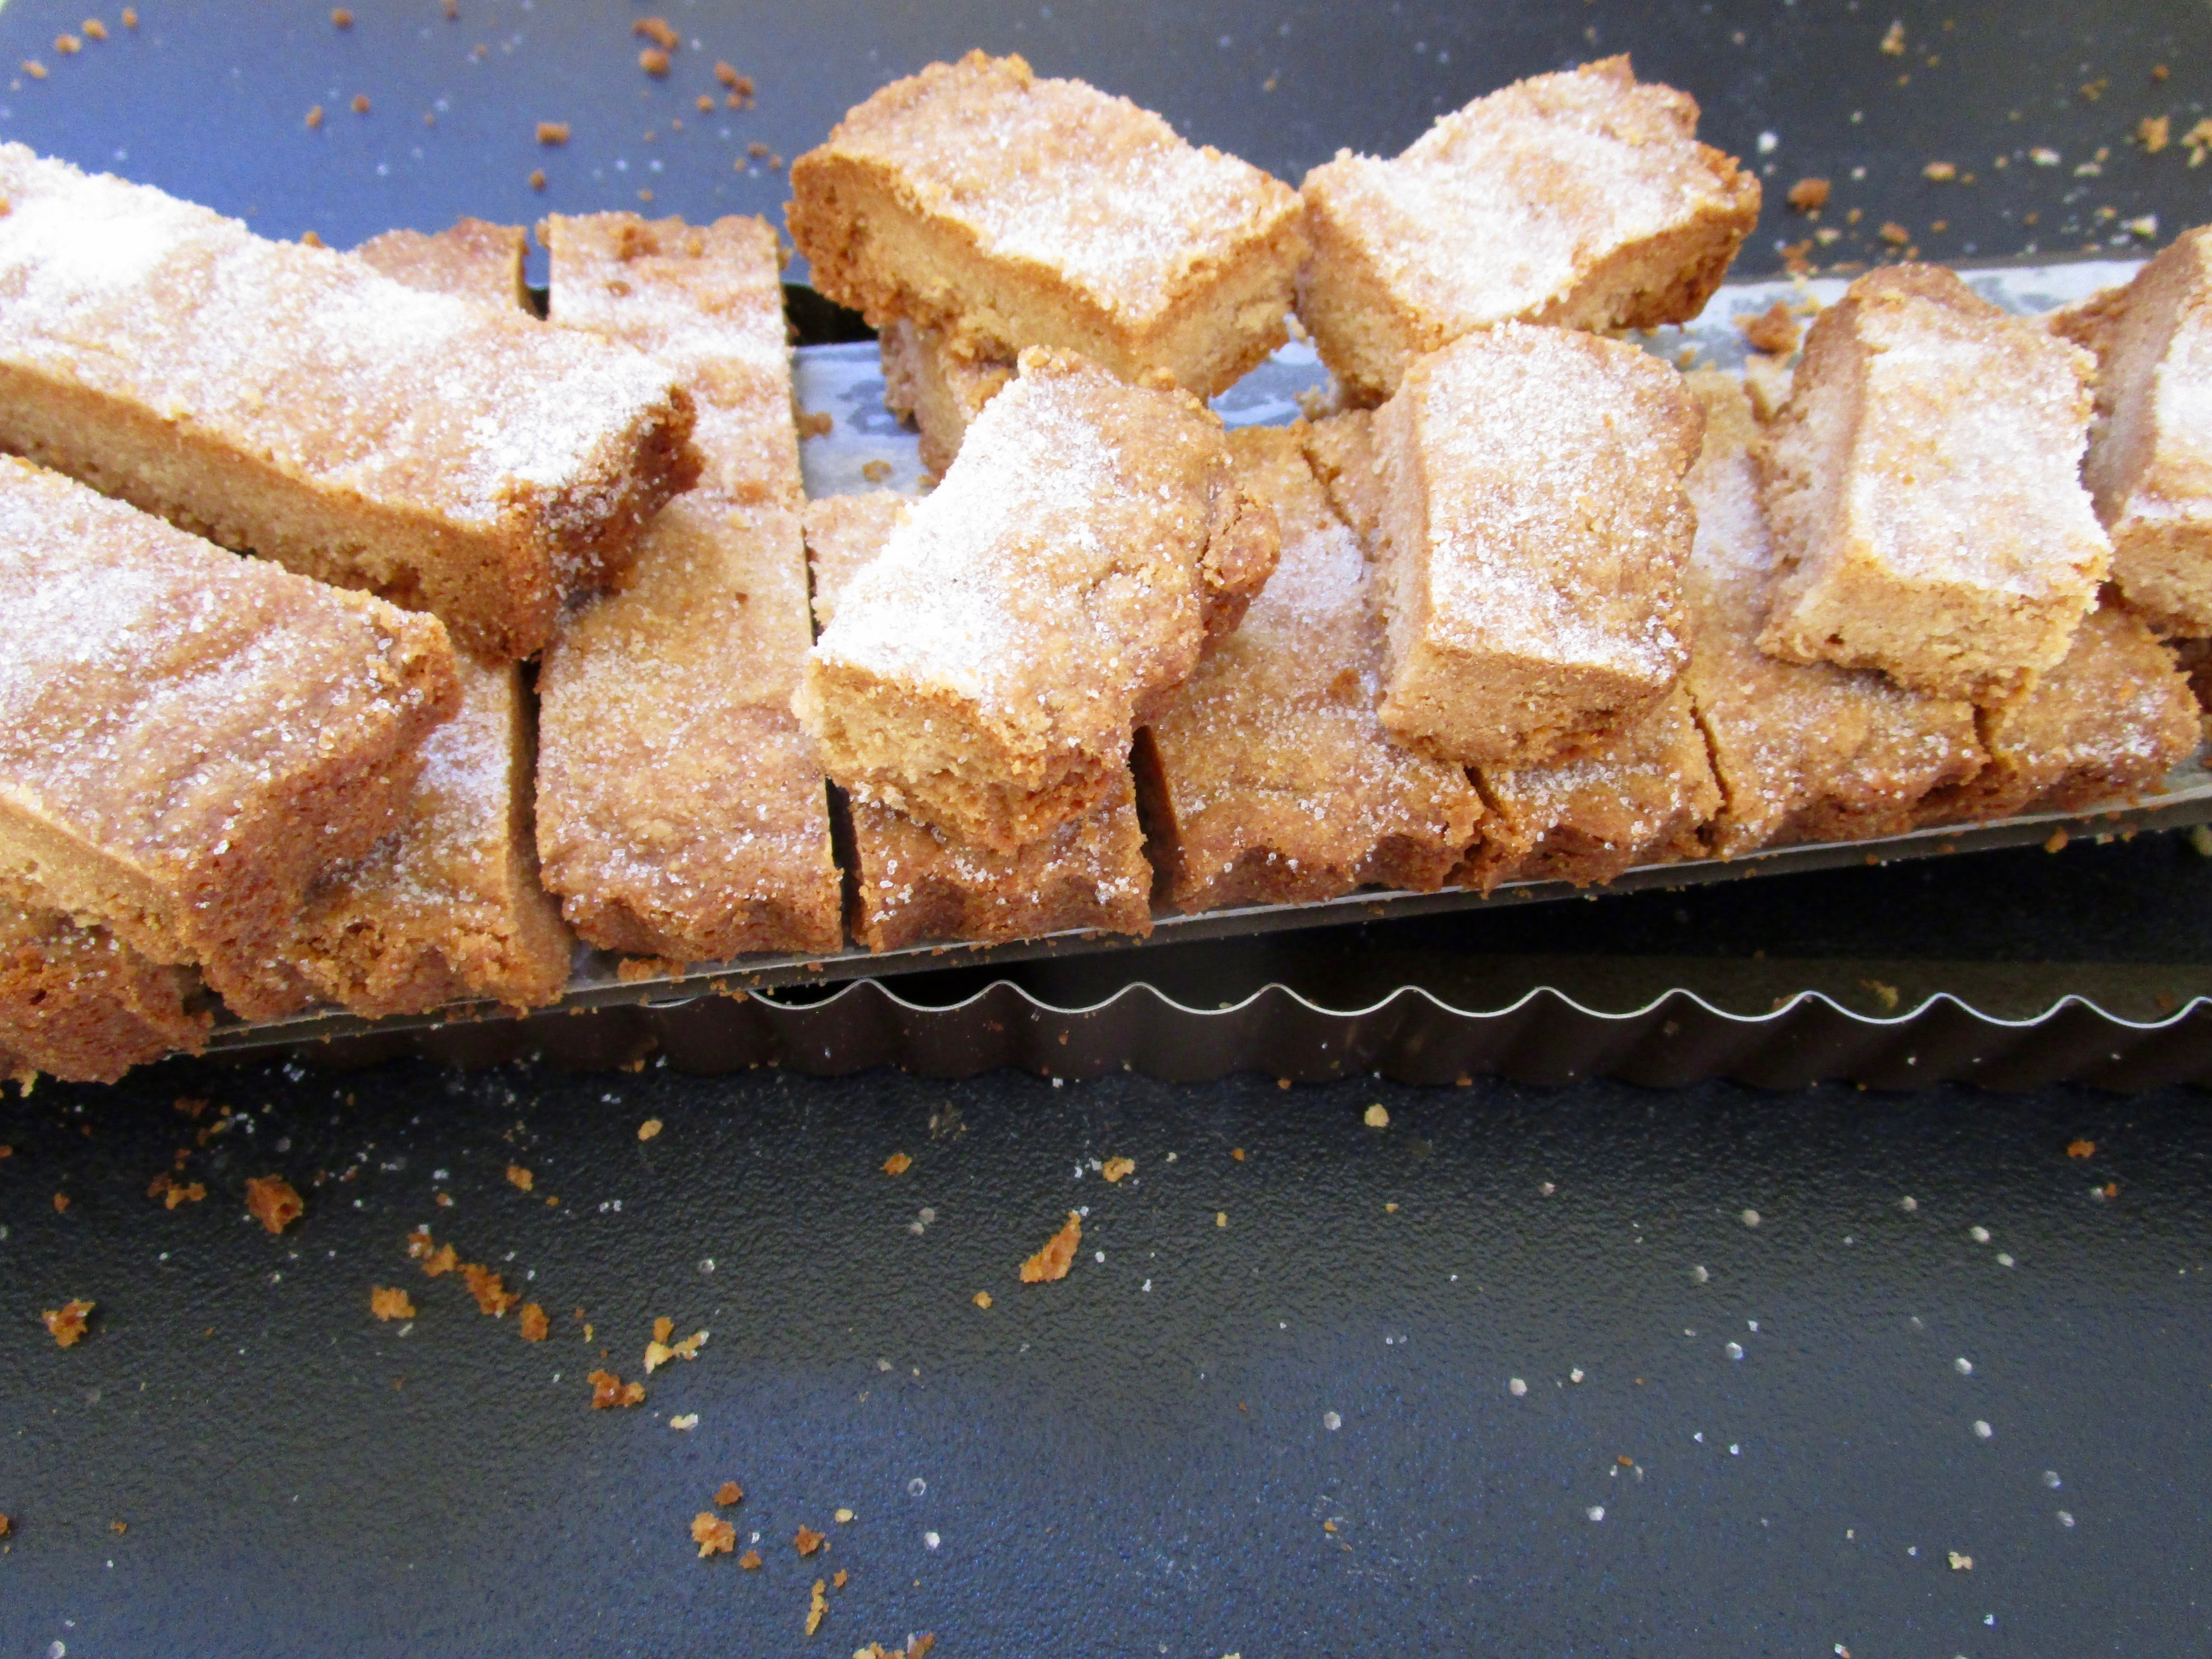 I used my oblong tart pan for these bars but any over-safe container will work.